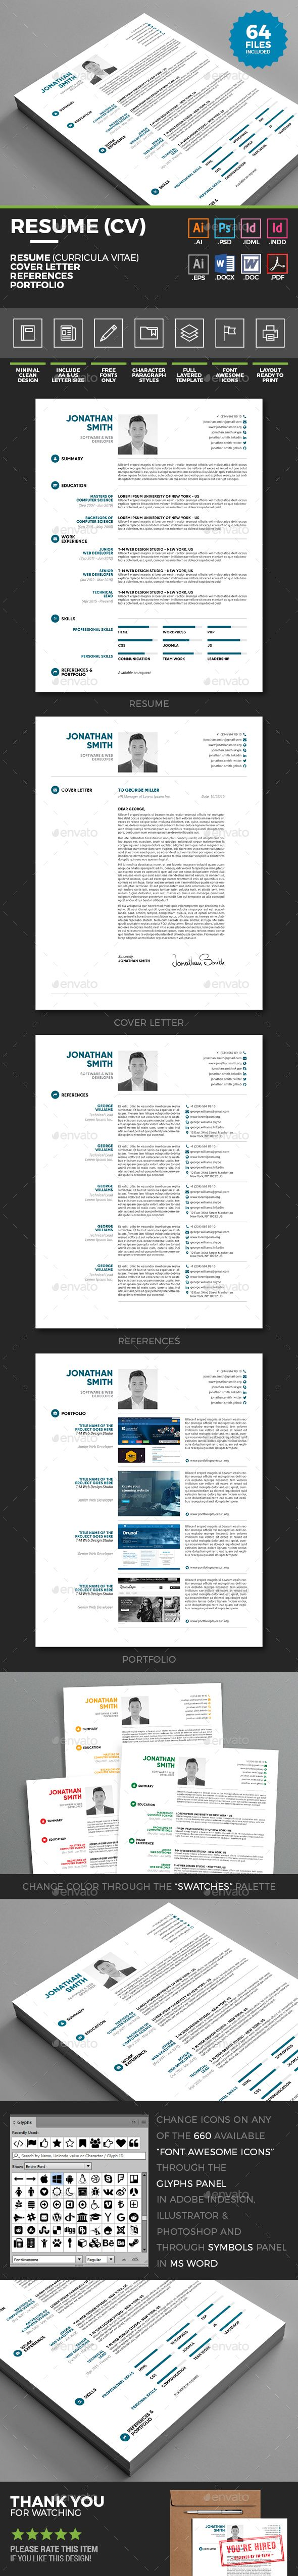 Simple Resume - Minimal Clean Resume Template by Y-N Simple Resume – Minimal Clean Resume (CV) with Cover letter, References and Portfolio with customizable icons (Contacts). Intended